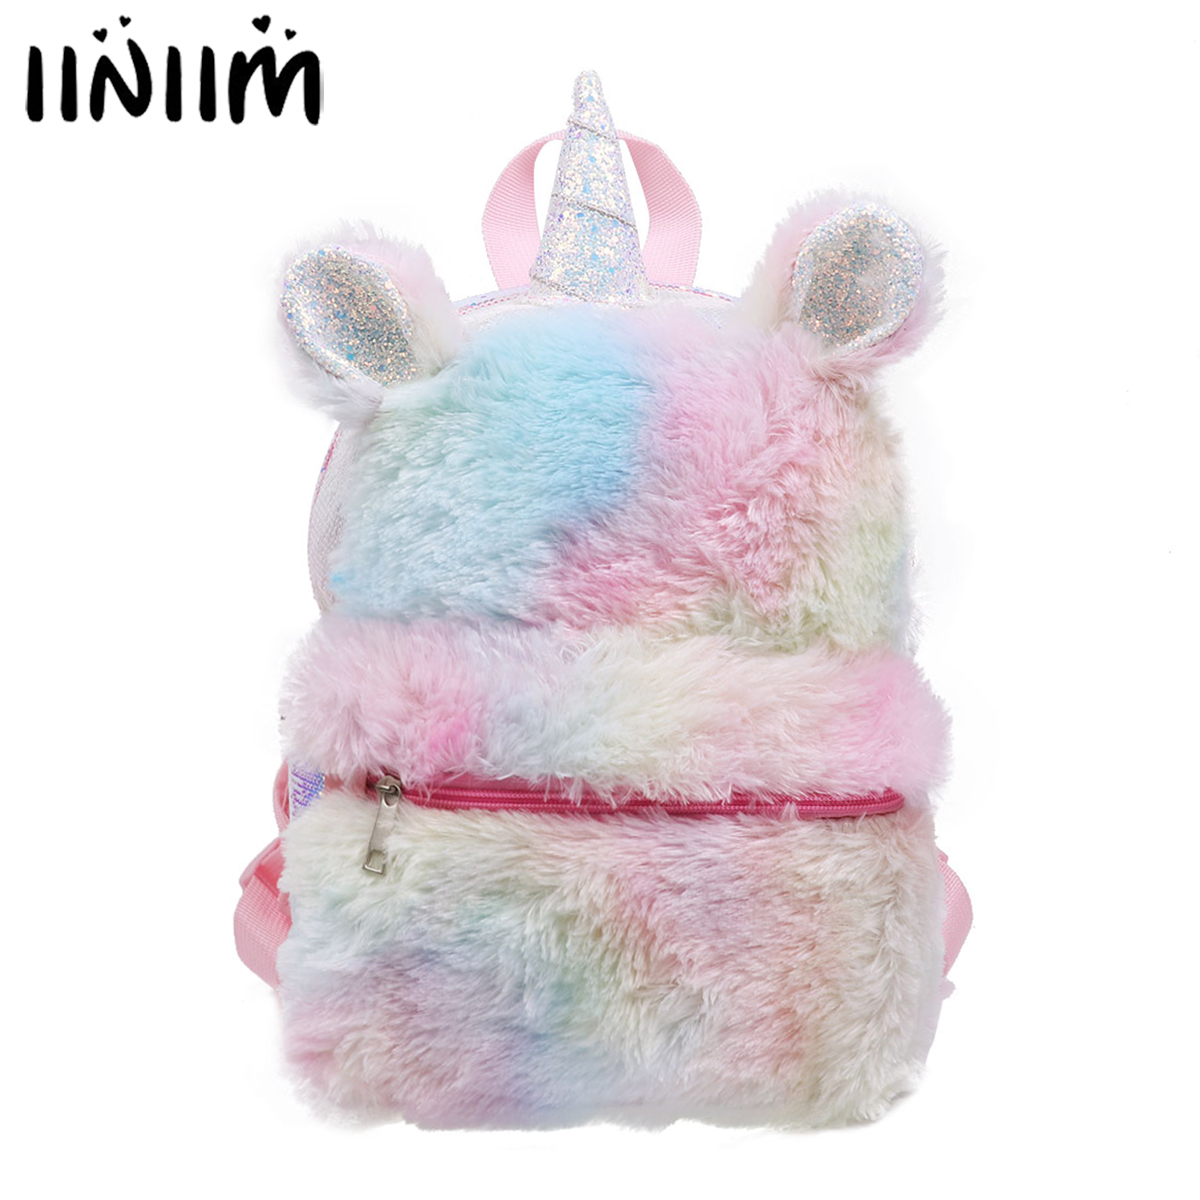 Kids Gilrs Dazzling Glittery Sequins Plush Cartoon Animal Horn & Ears Daypack Shoulder Travel Bag for Ballet Dance Backpack